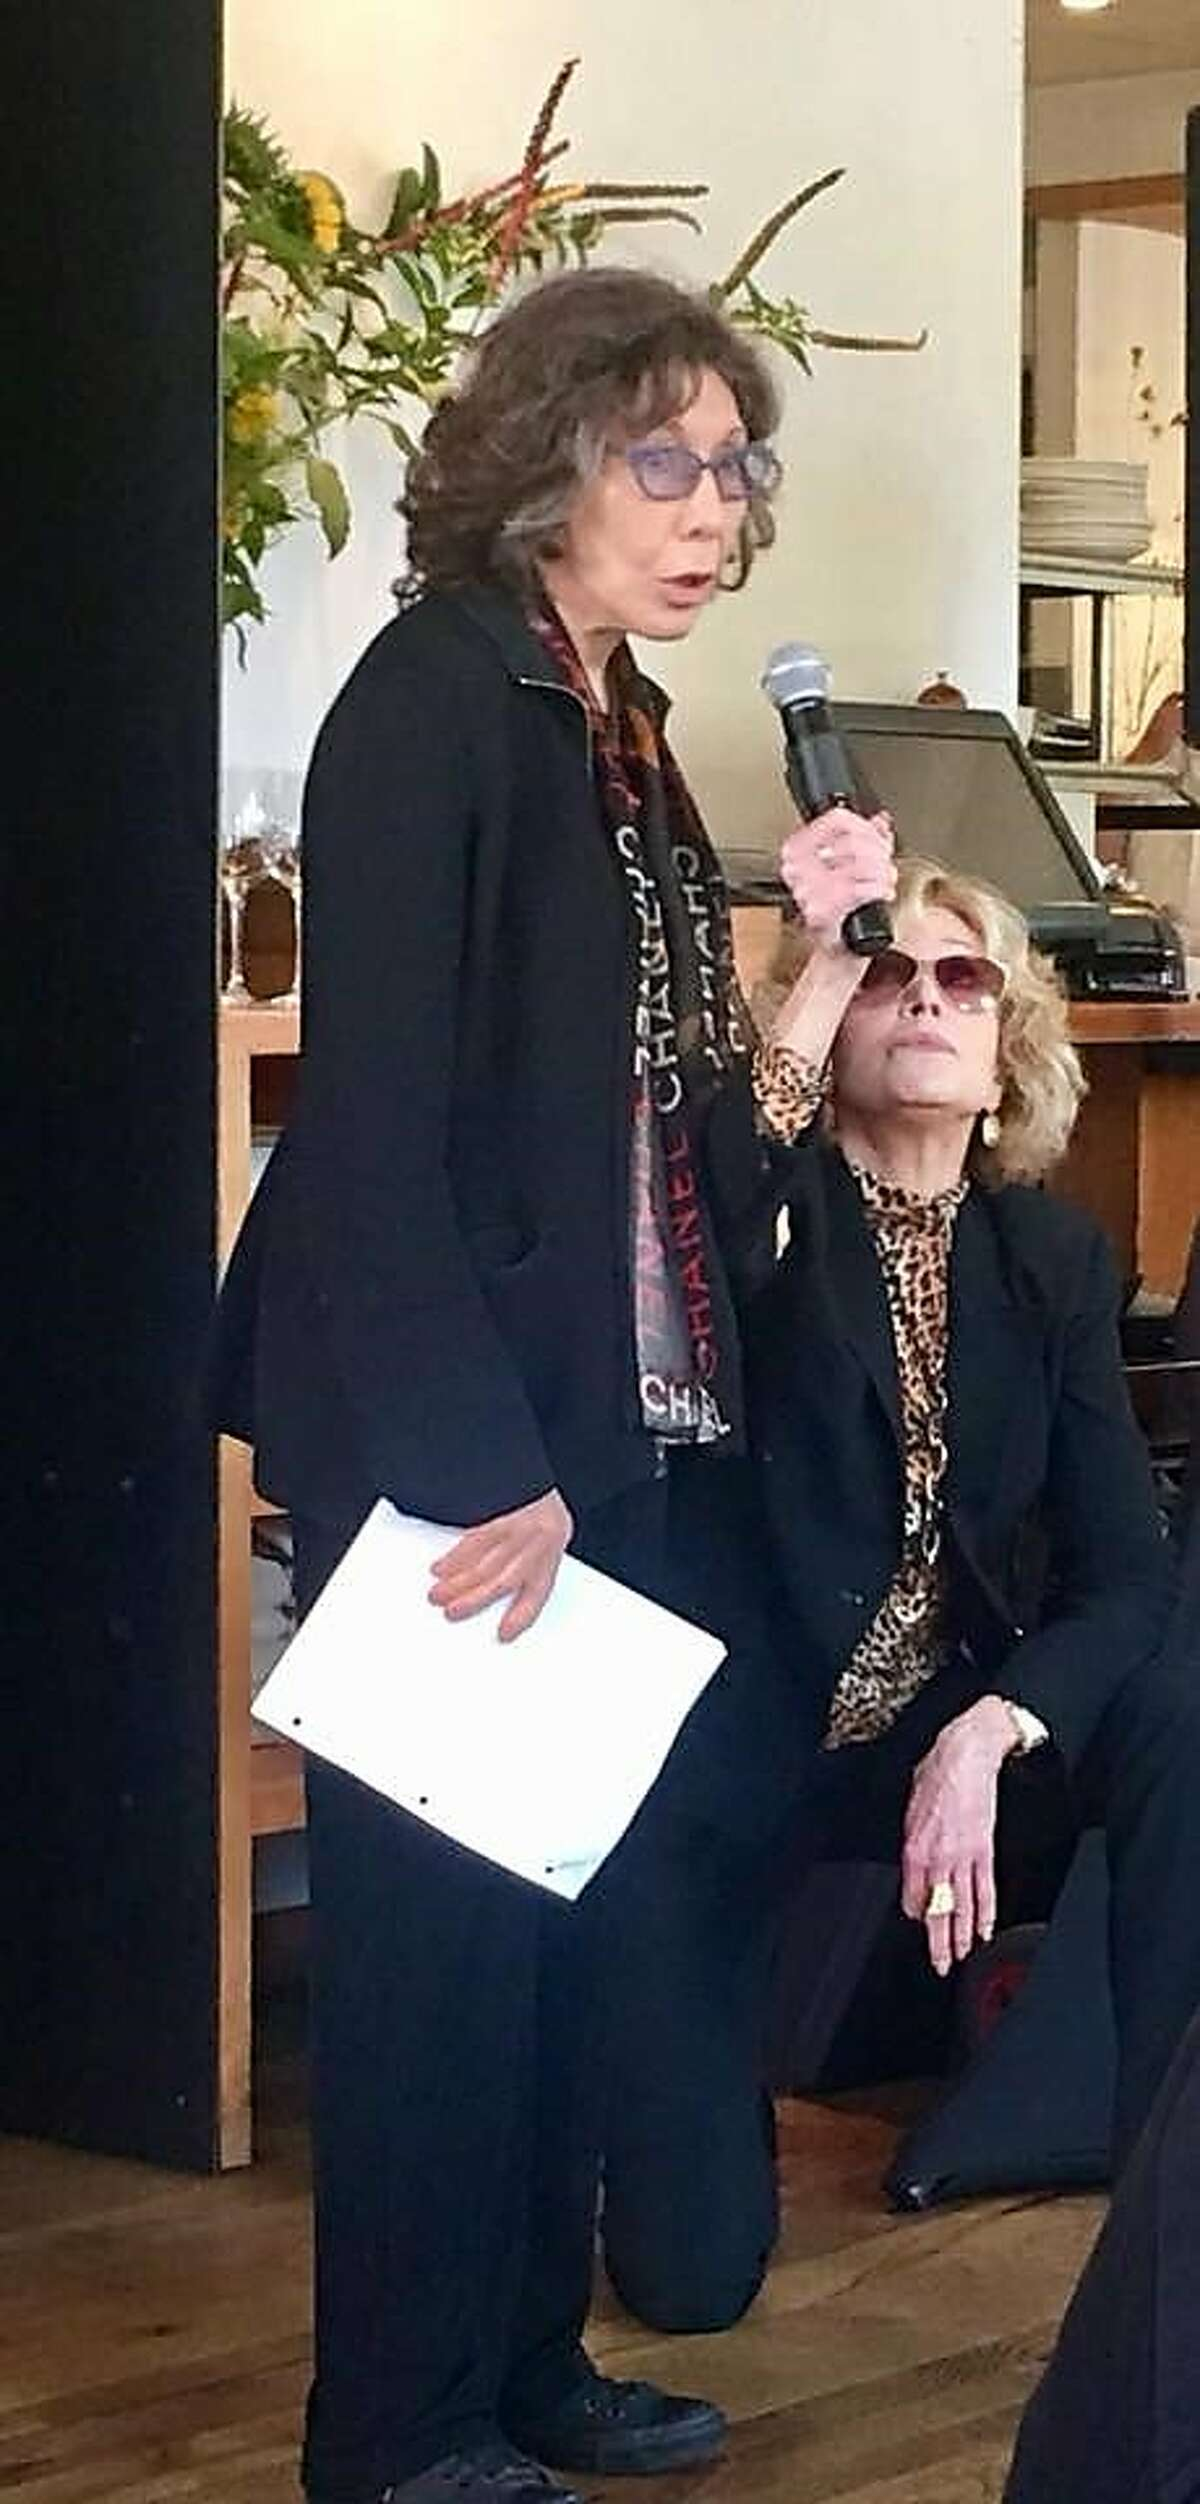 Jane Fonda holds a mic for Lily Tomlin at benefit for onefairwage.org